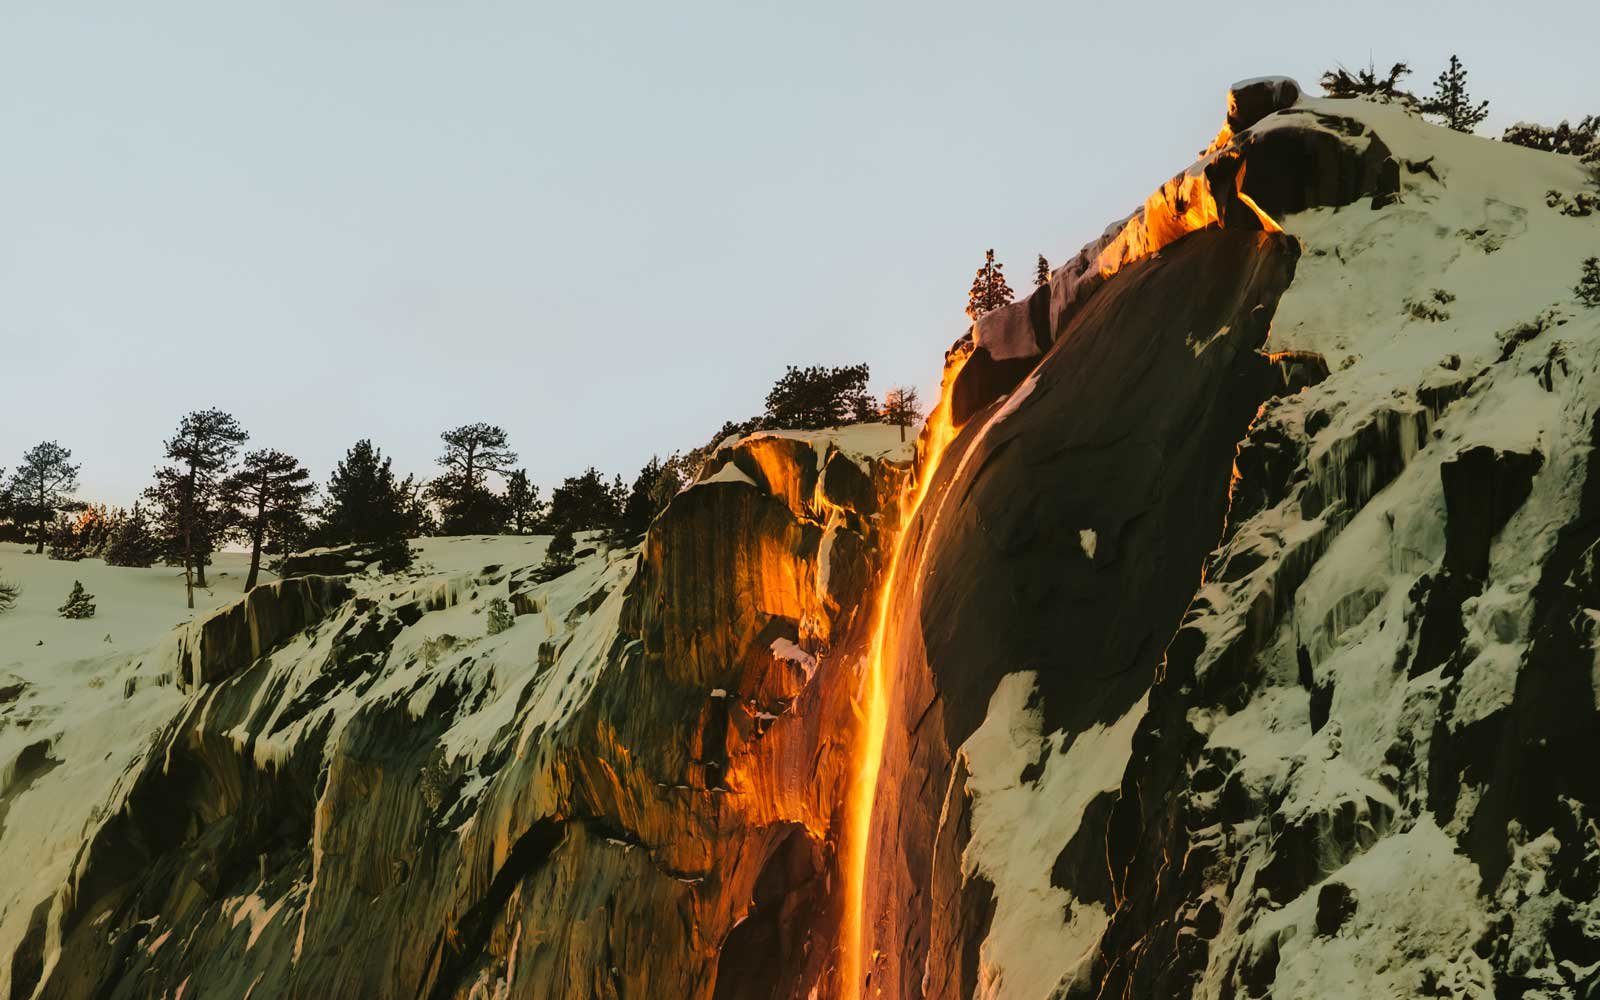 Firefall at Yosemite 2019